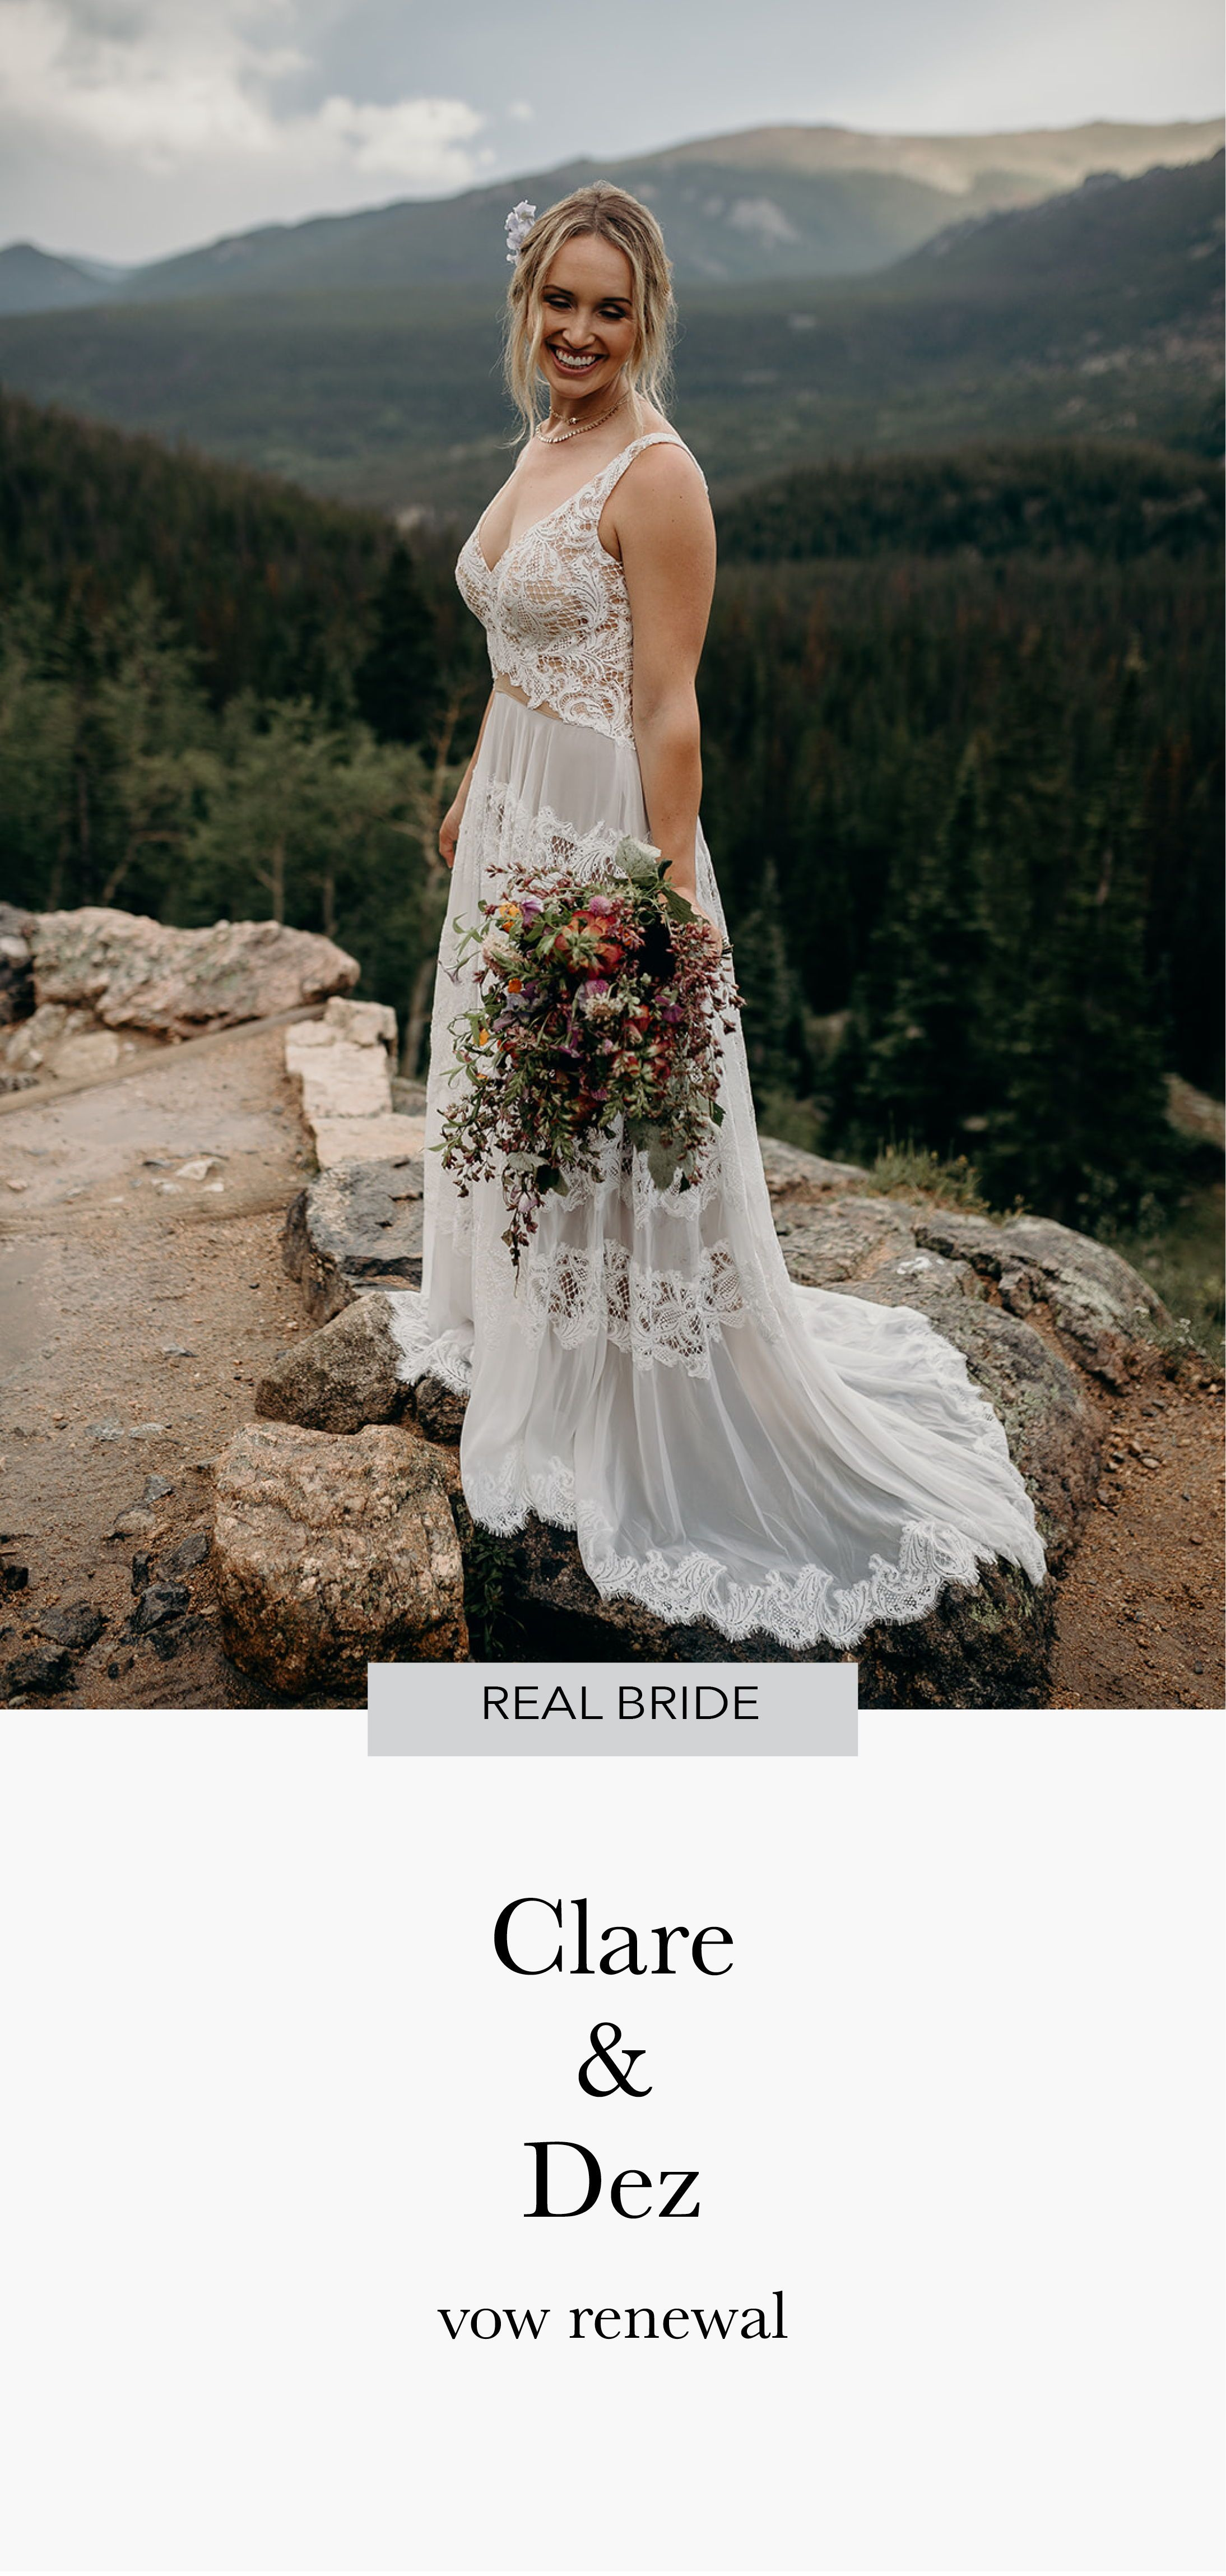 Willowby Lace Wedding Dress For This Colorado Mountain Vow Renewal